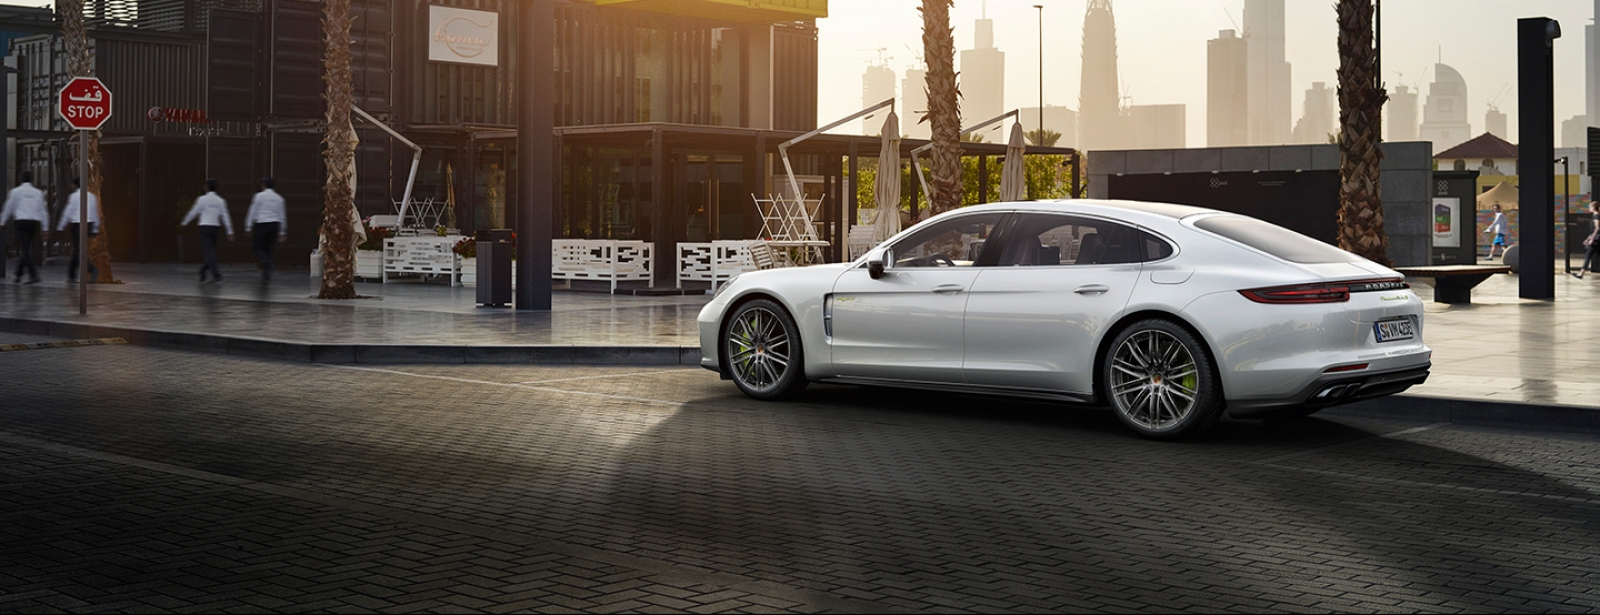 Porsche - Panamera Turbo S E-Hybrid Executive - Courage changes everything.